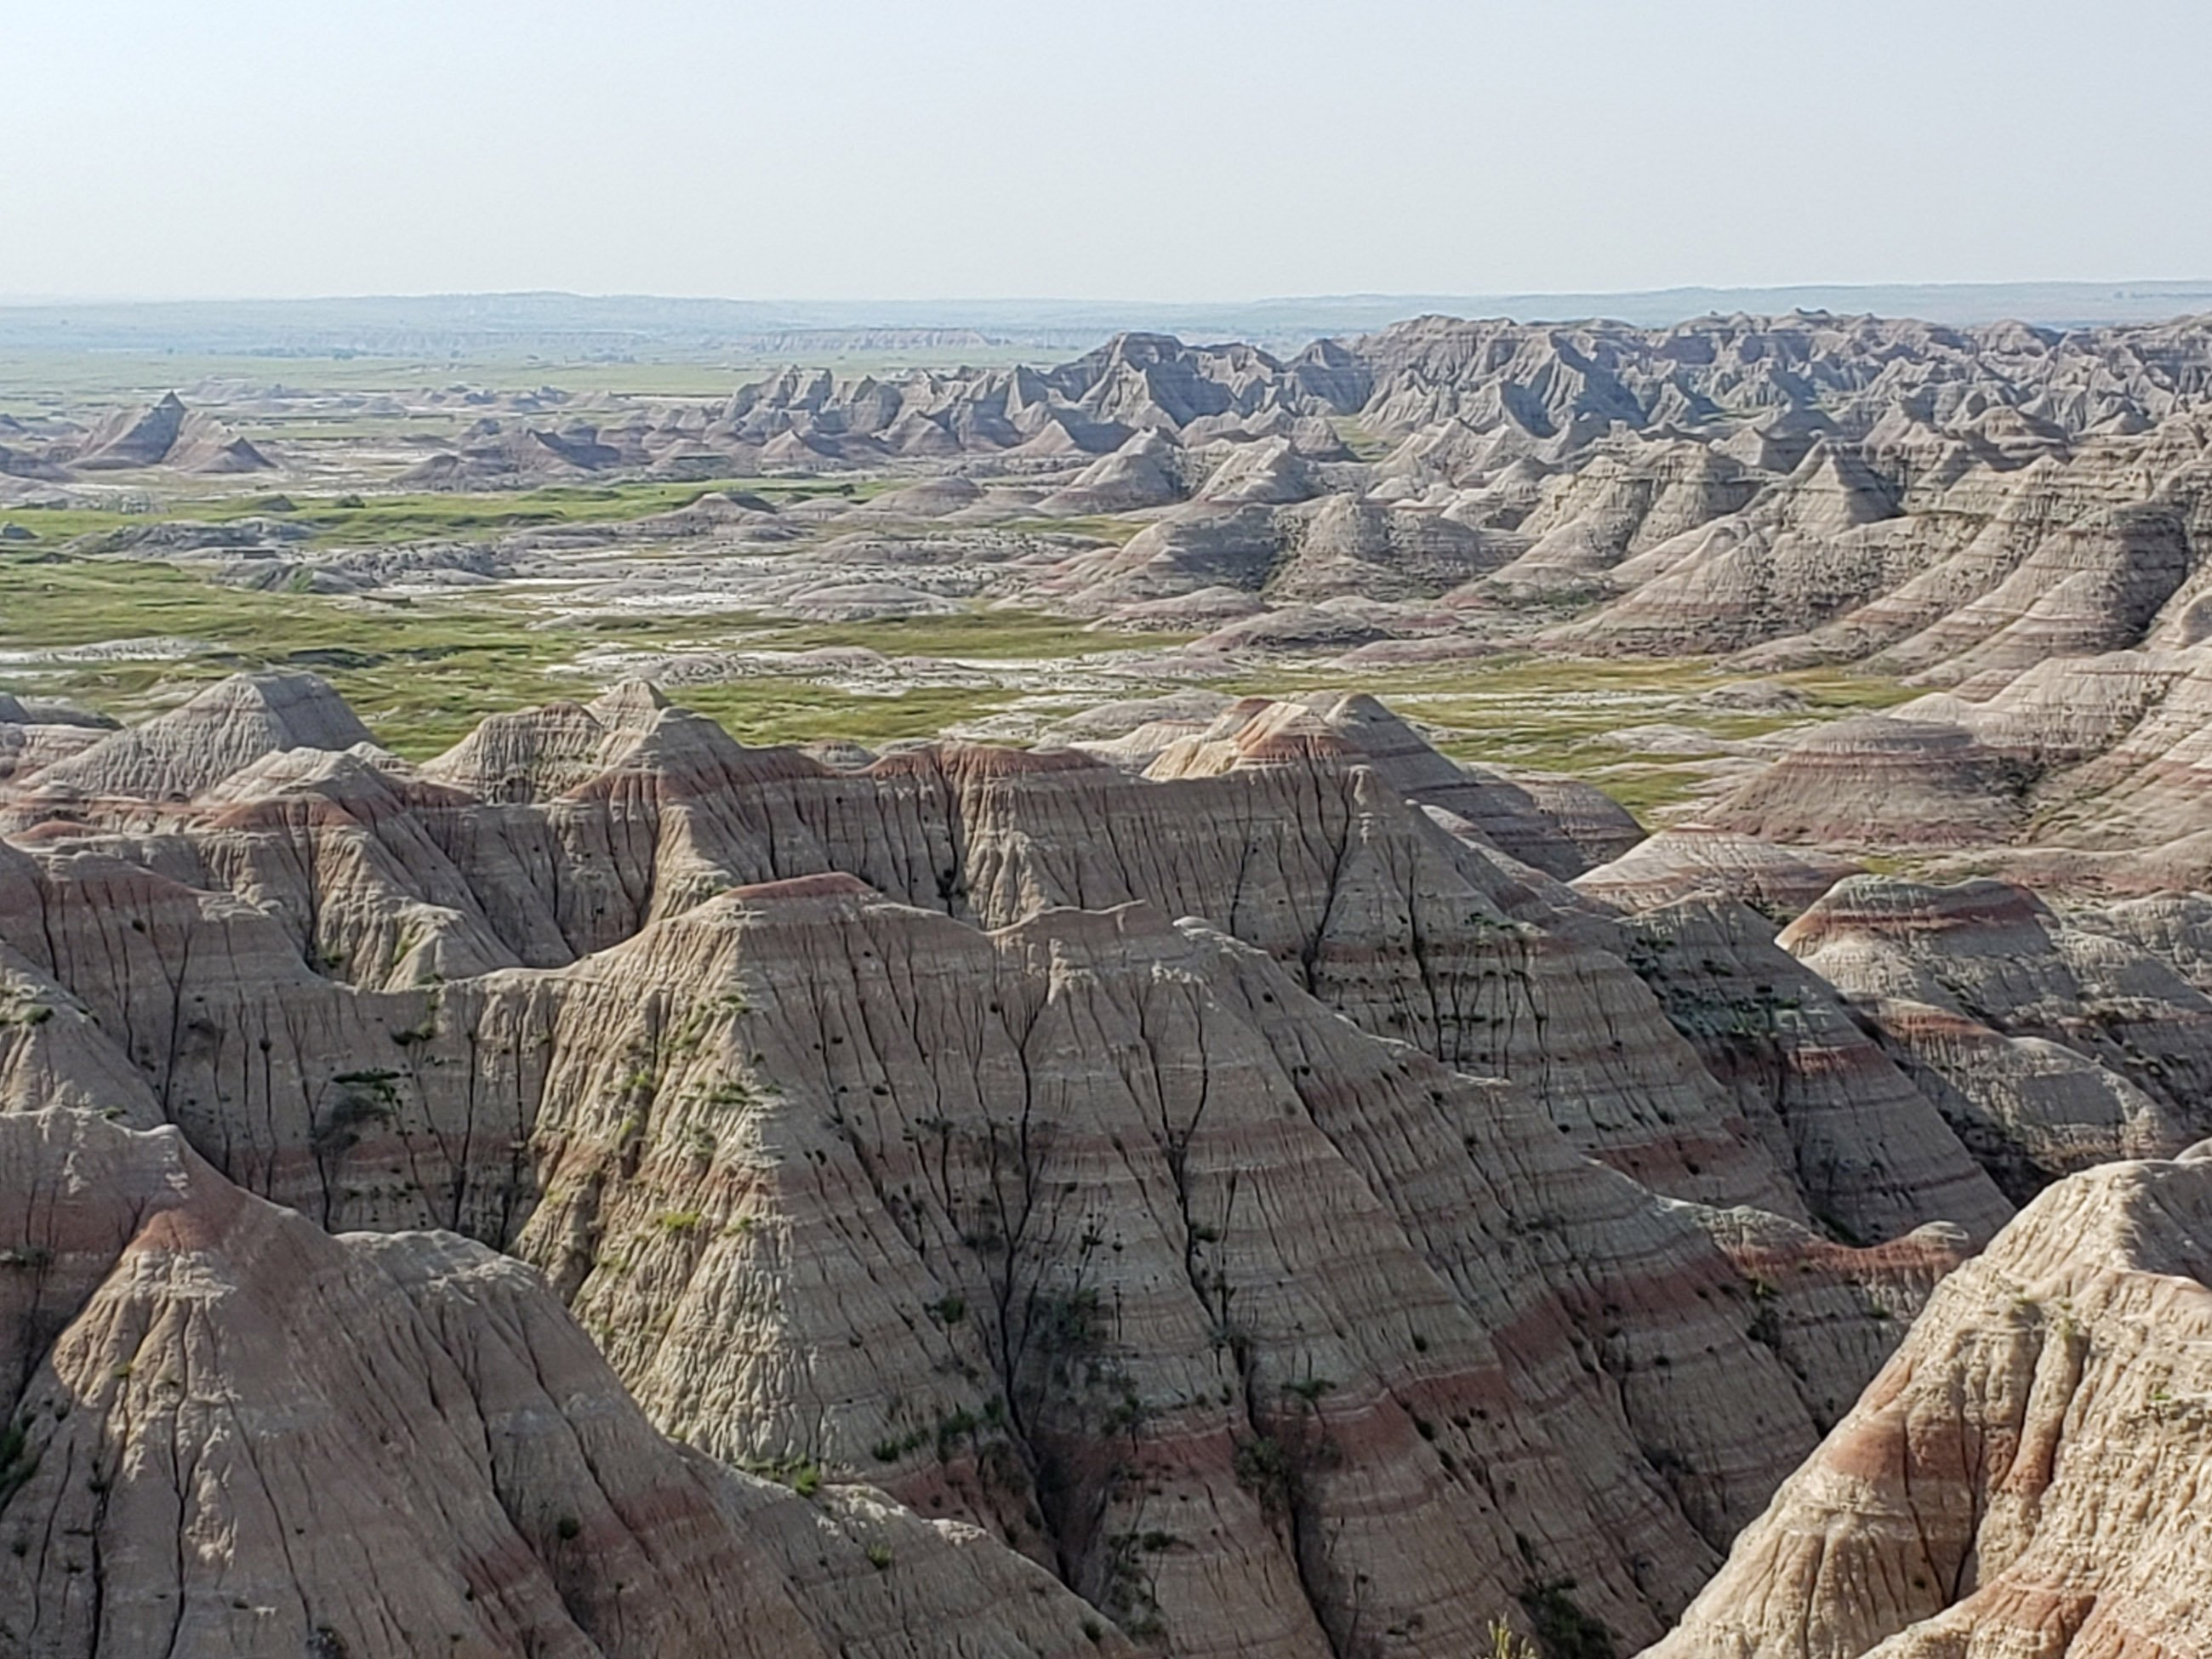 View of the Badlands from the Rim Road at Badlands National Park